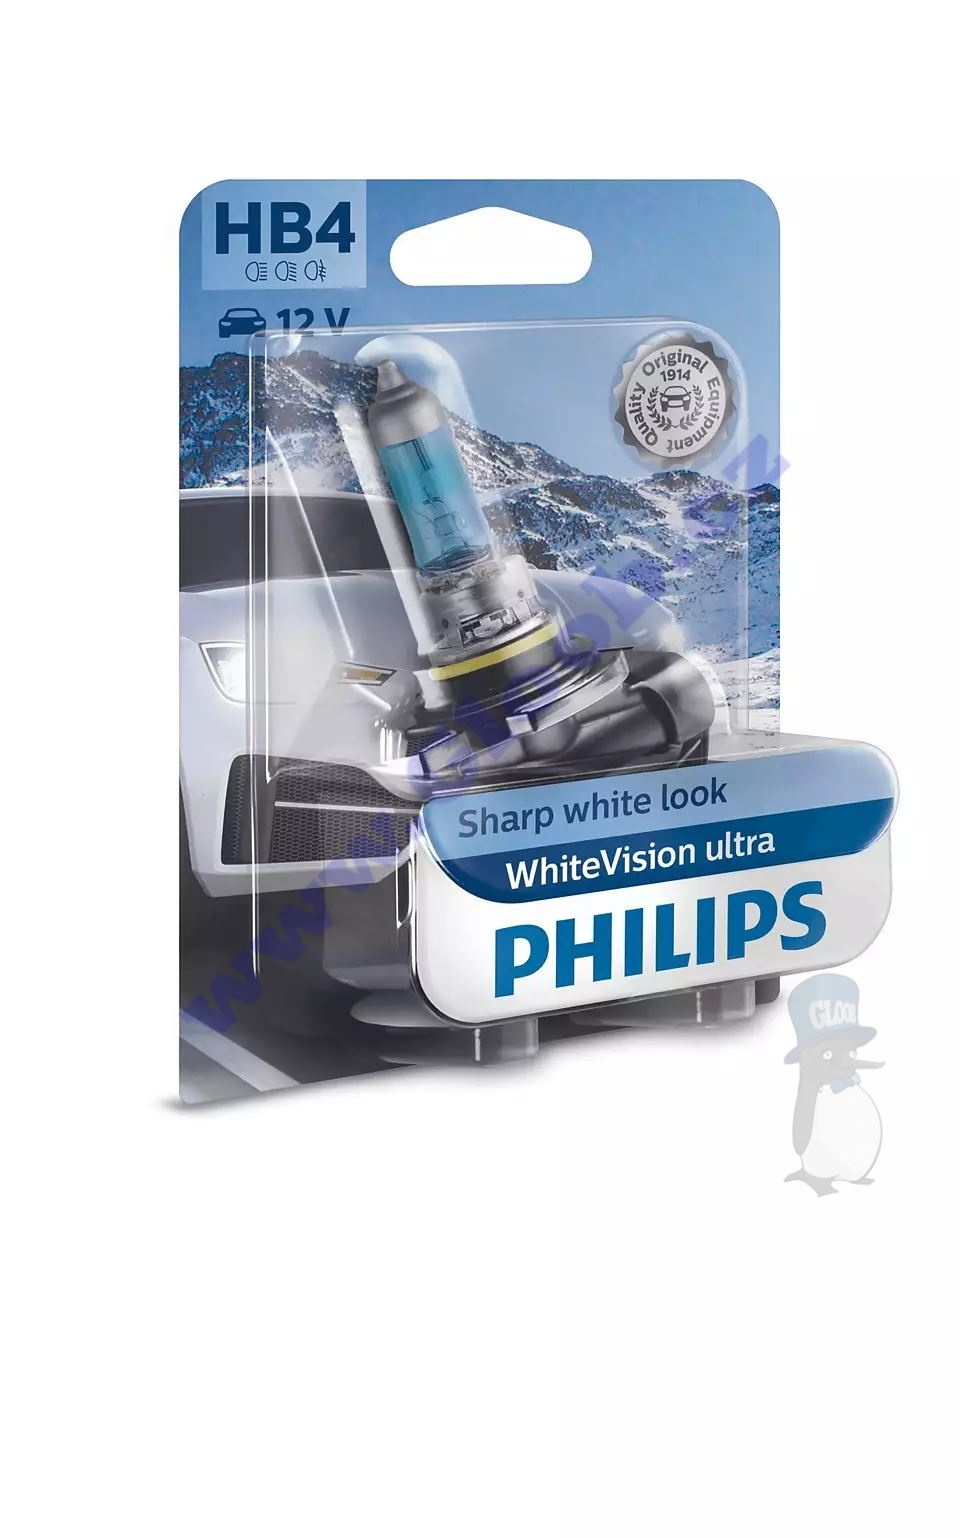 Philips WhiteVision ultra 9006WVUB1 HB4 P22d 12V 60W